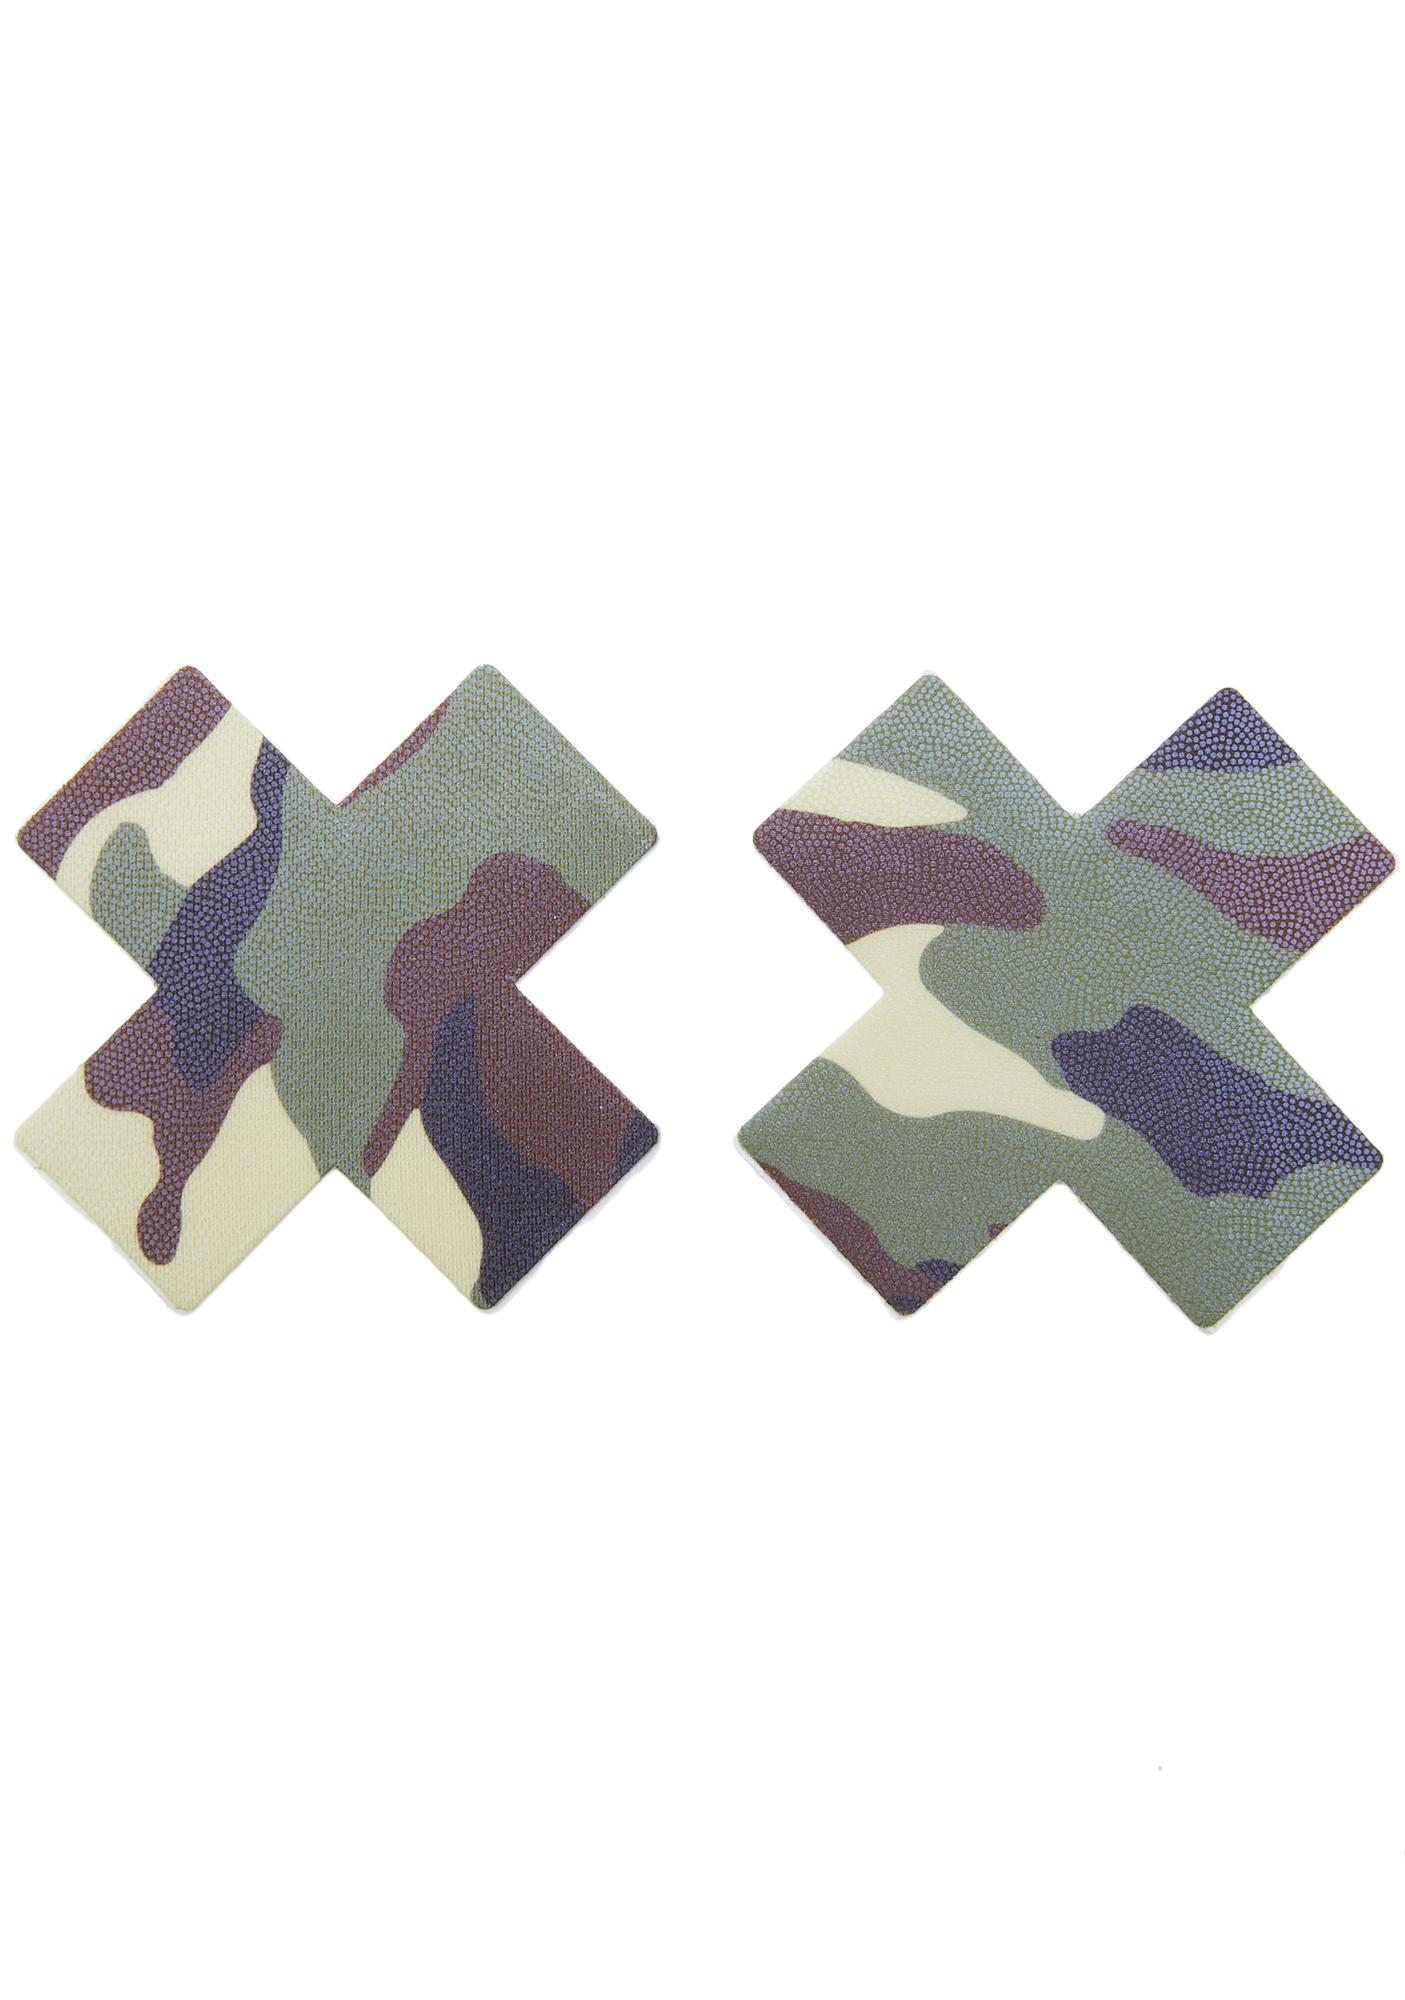 Pastease Green Camo Cross Pasties